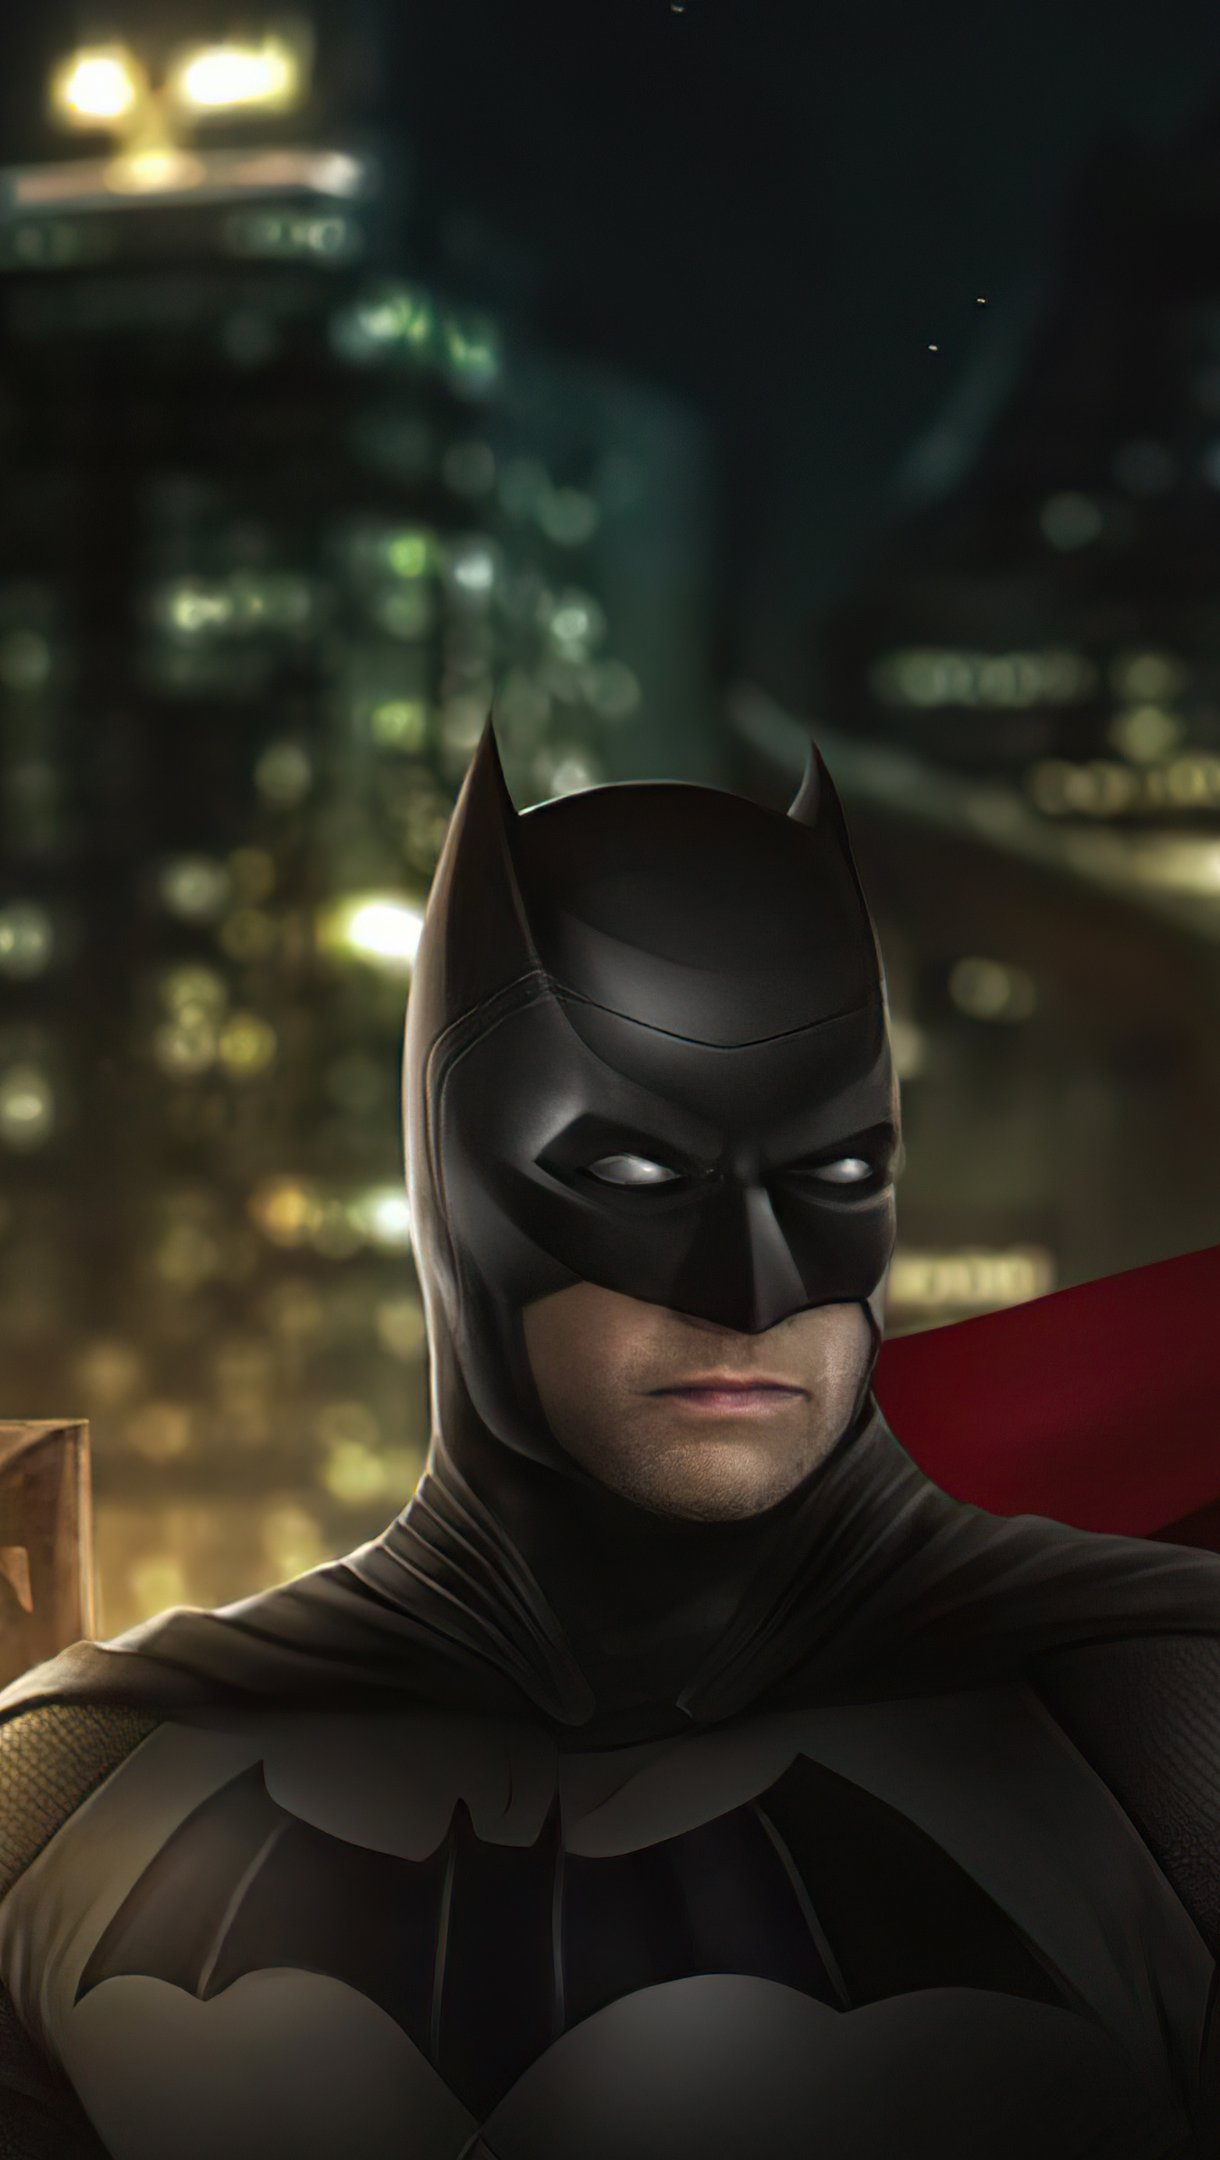 Wallpaper Batman and Superman in the city Vertical